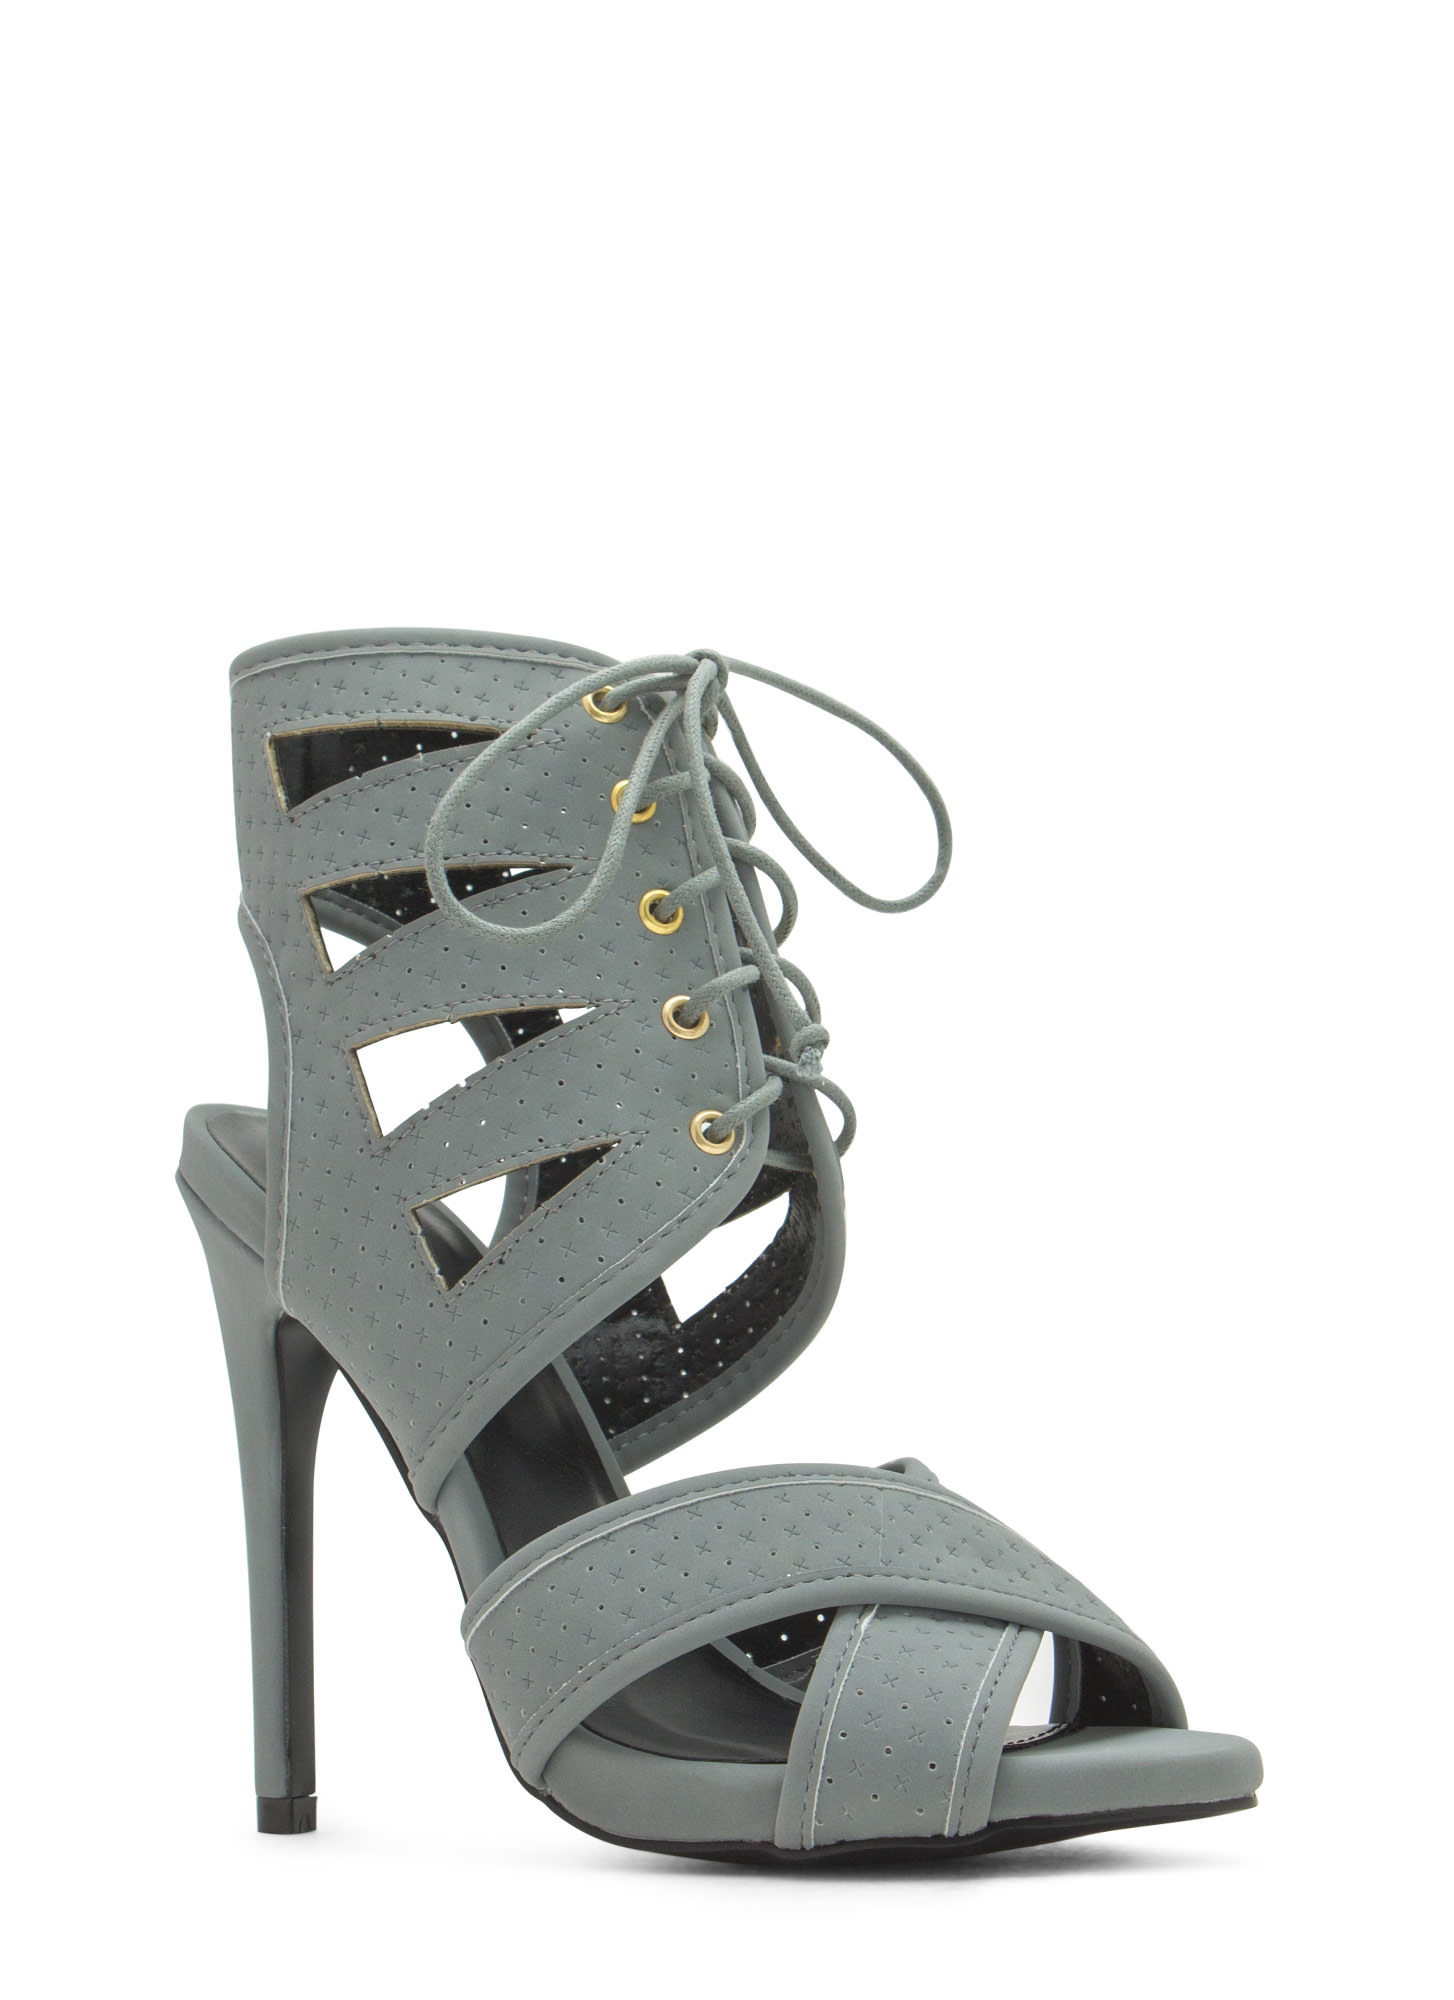 Triangulated Perforated Cut-Out Heels ASHGREY